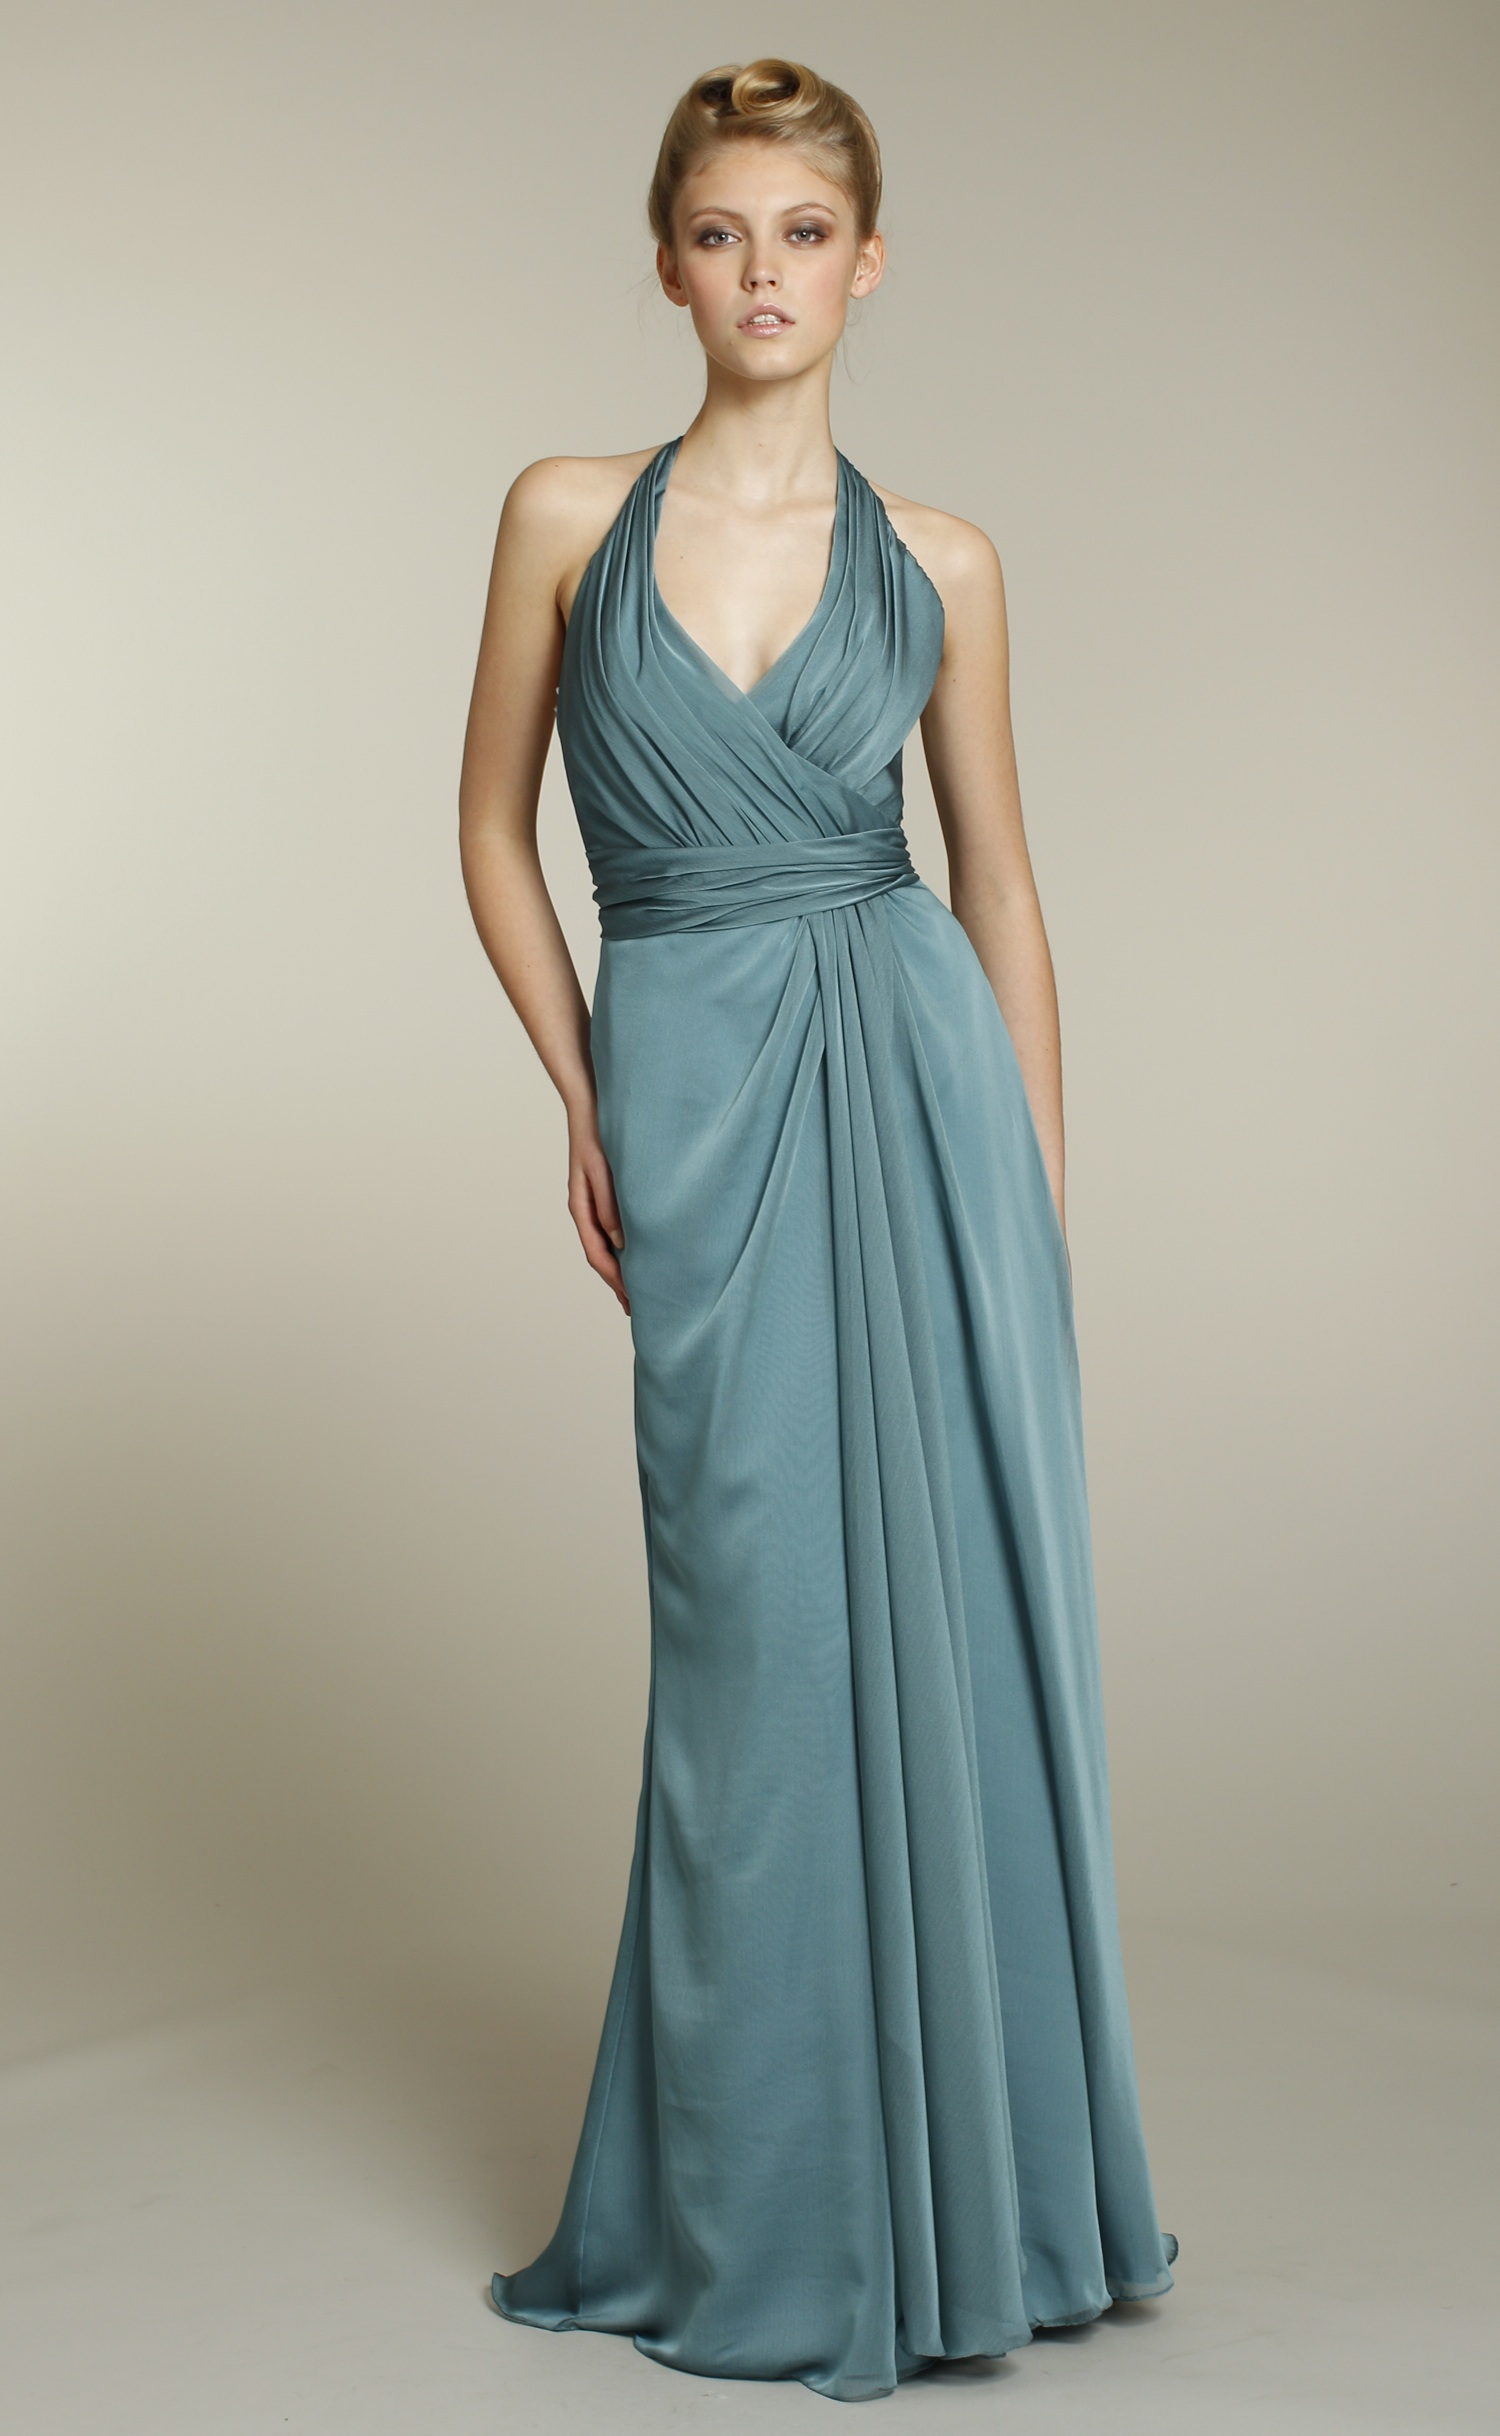 Full-length Aqua Chiffon